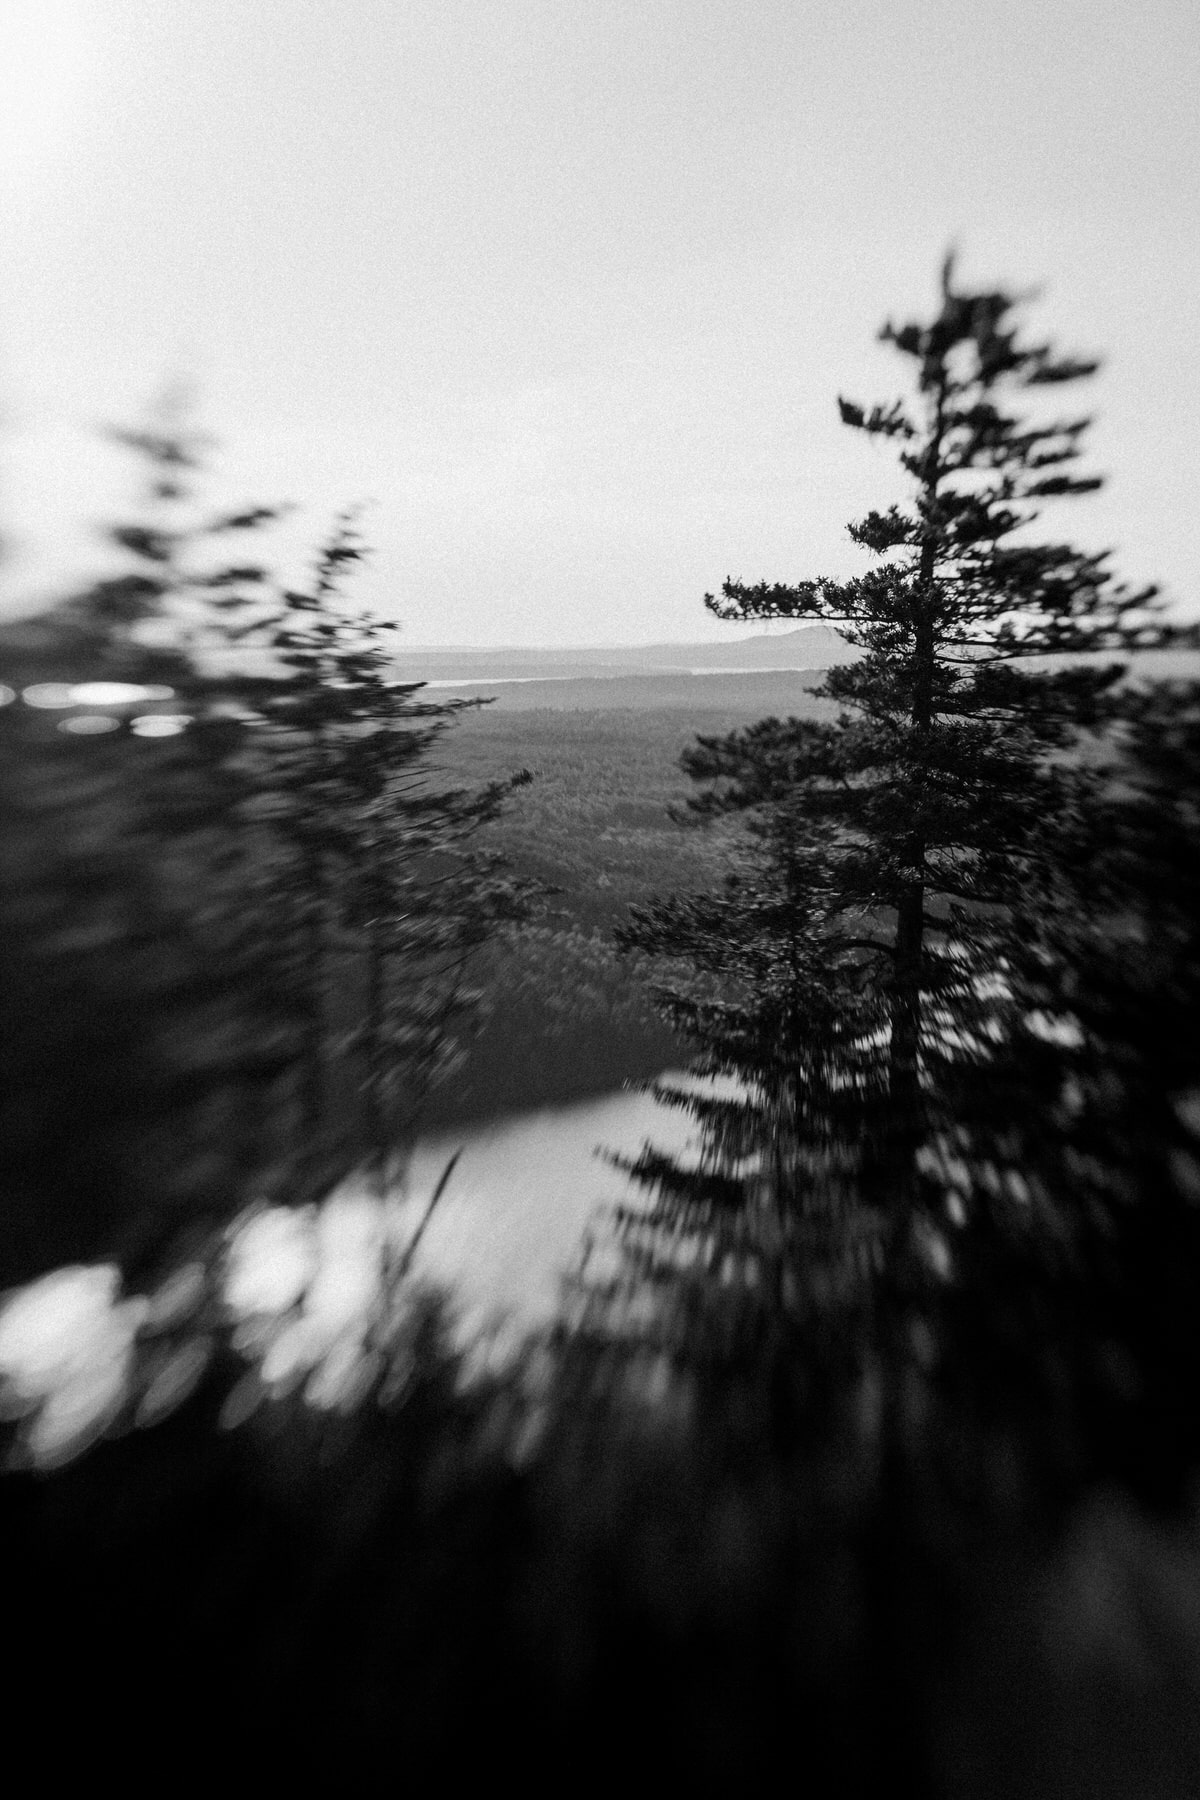 Acadia-National-Park-Maine-black-and-white-fine-art-photography-by-Studio-L-photographer-Laura-Schneider-_5510